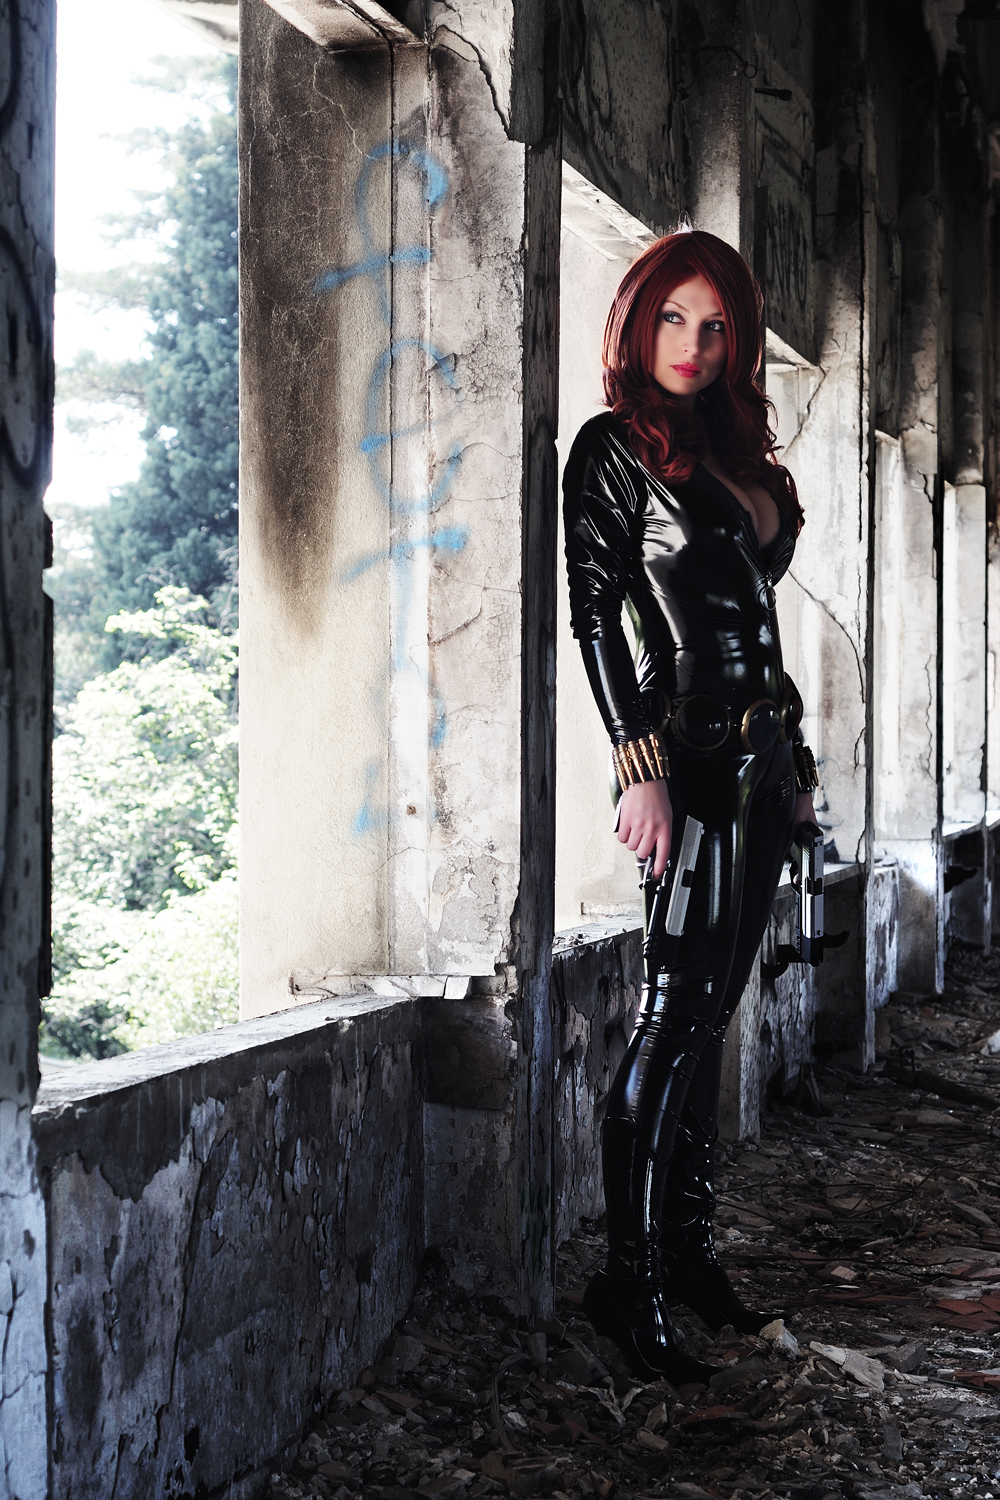 Giorgia Cosplay is Black Widow | Photo by: Daniele Faccioli